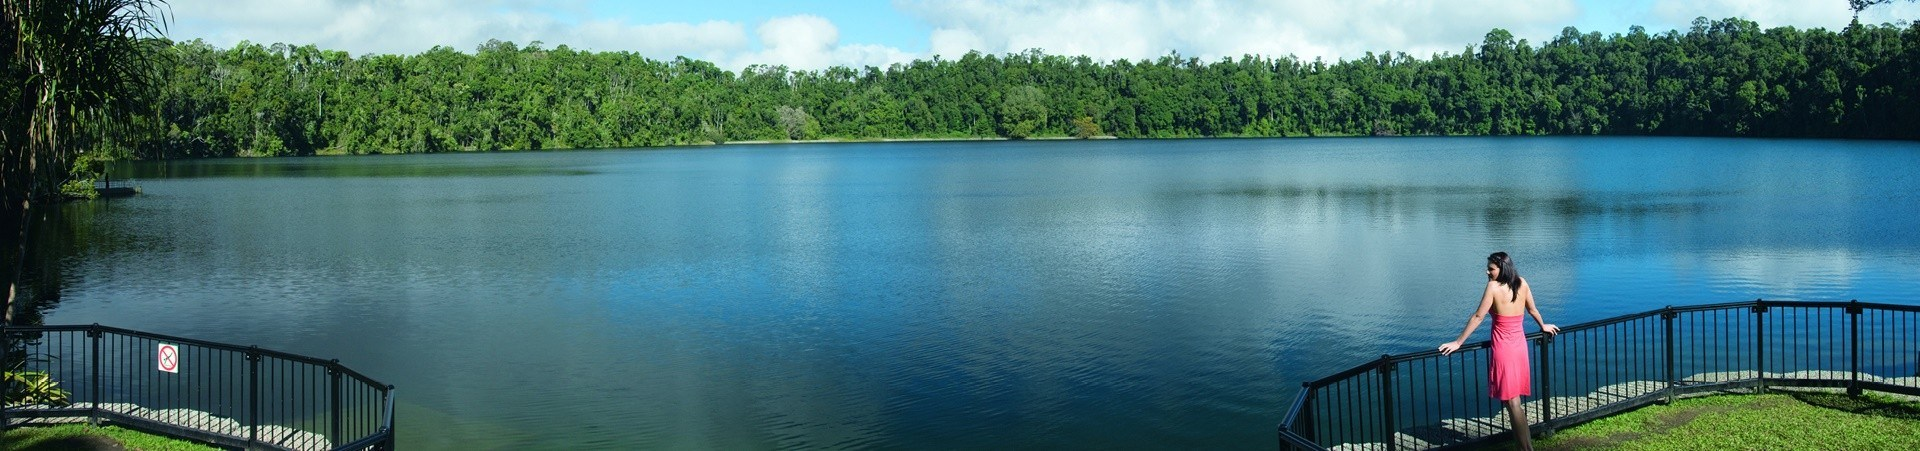 Atherton Tablelands places of interest include Lake Barrine